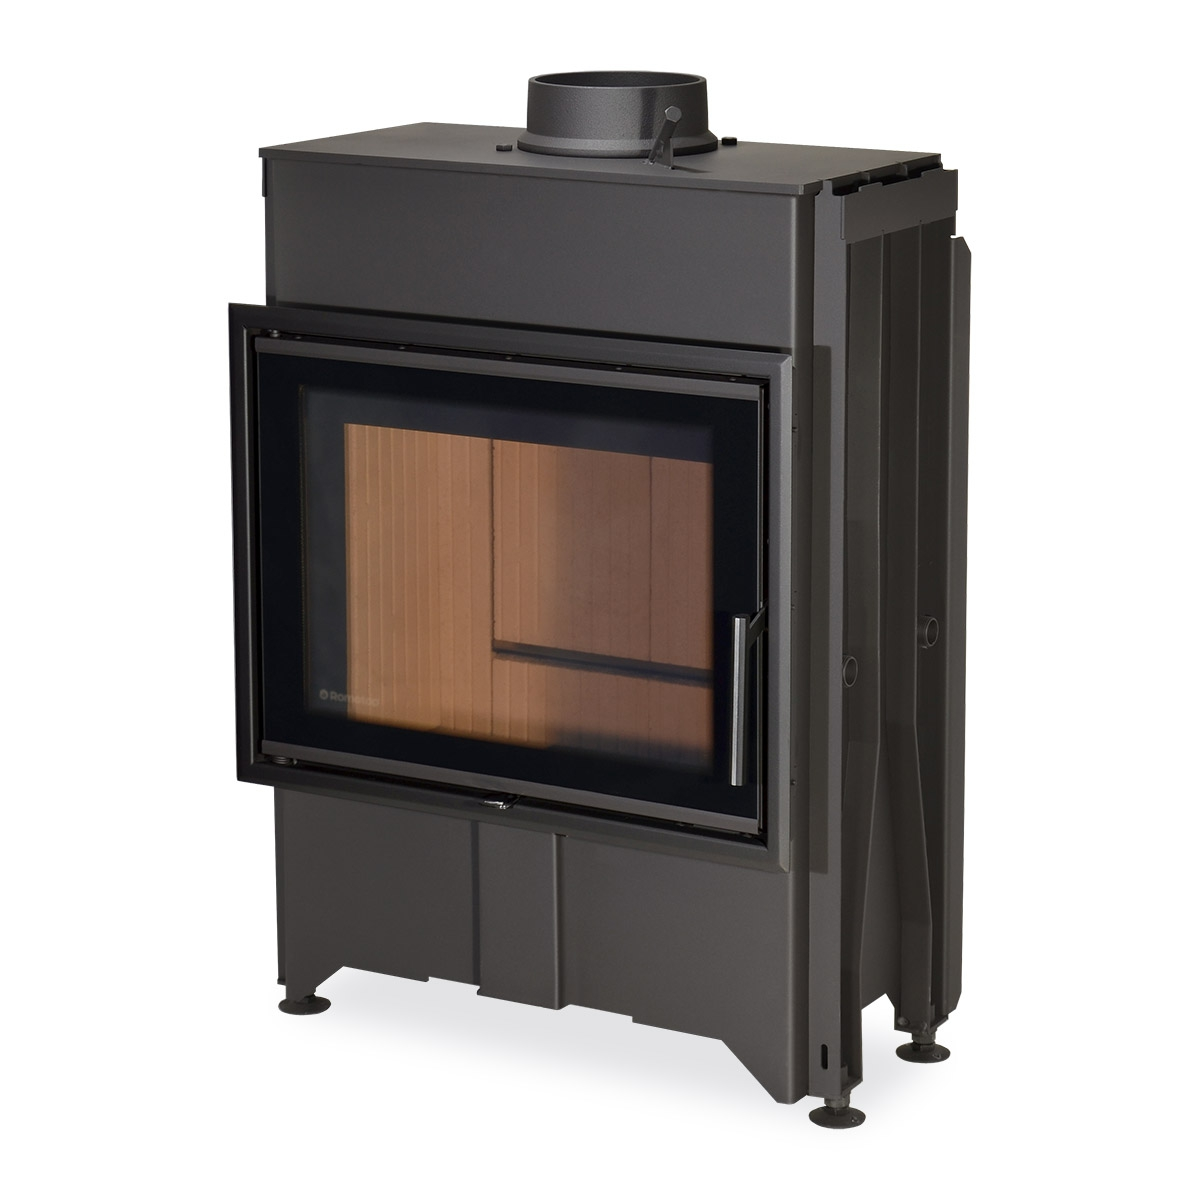 DYNAMIC B2G 66.50.13 - straight fireplace insert with back stoking and triple glazing